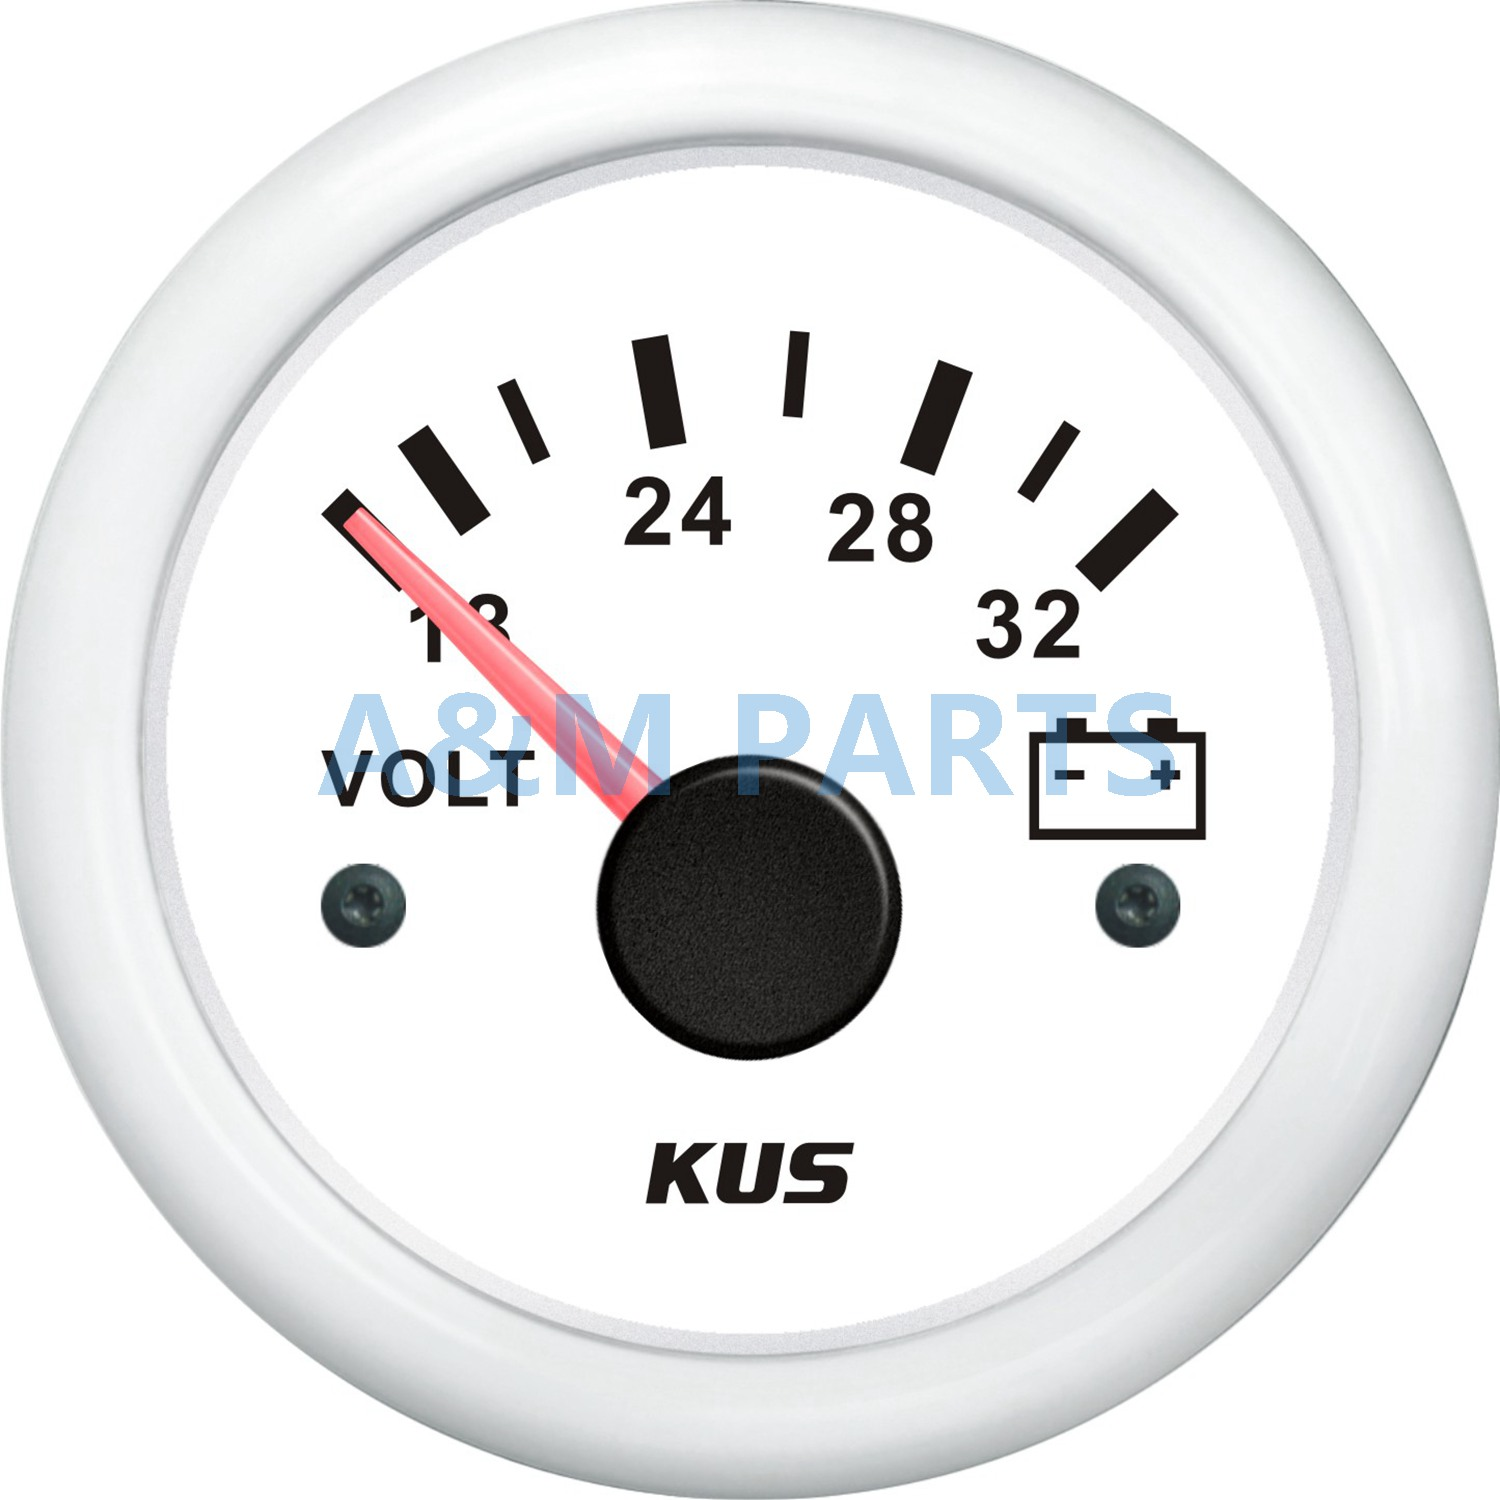 KUS Marine Battery Voltage Gauge Boat Battery Volt Indicator White Range 18 32V 52mm Working Volt 24V